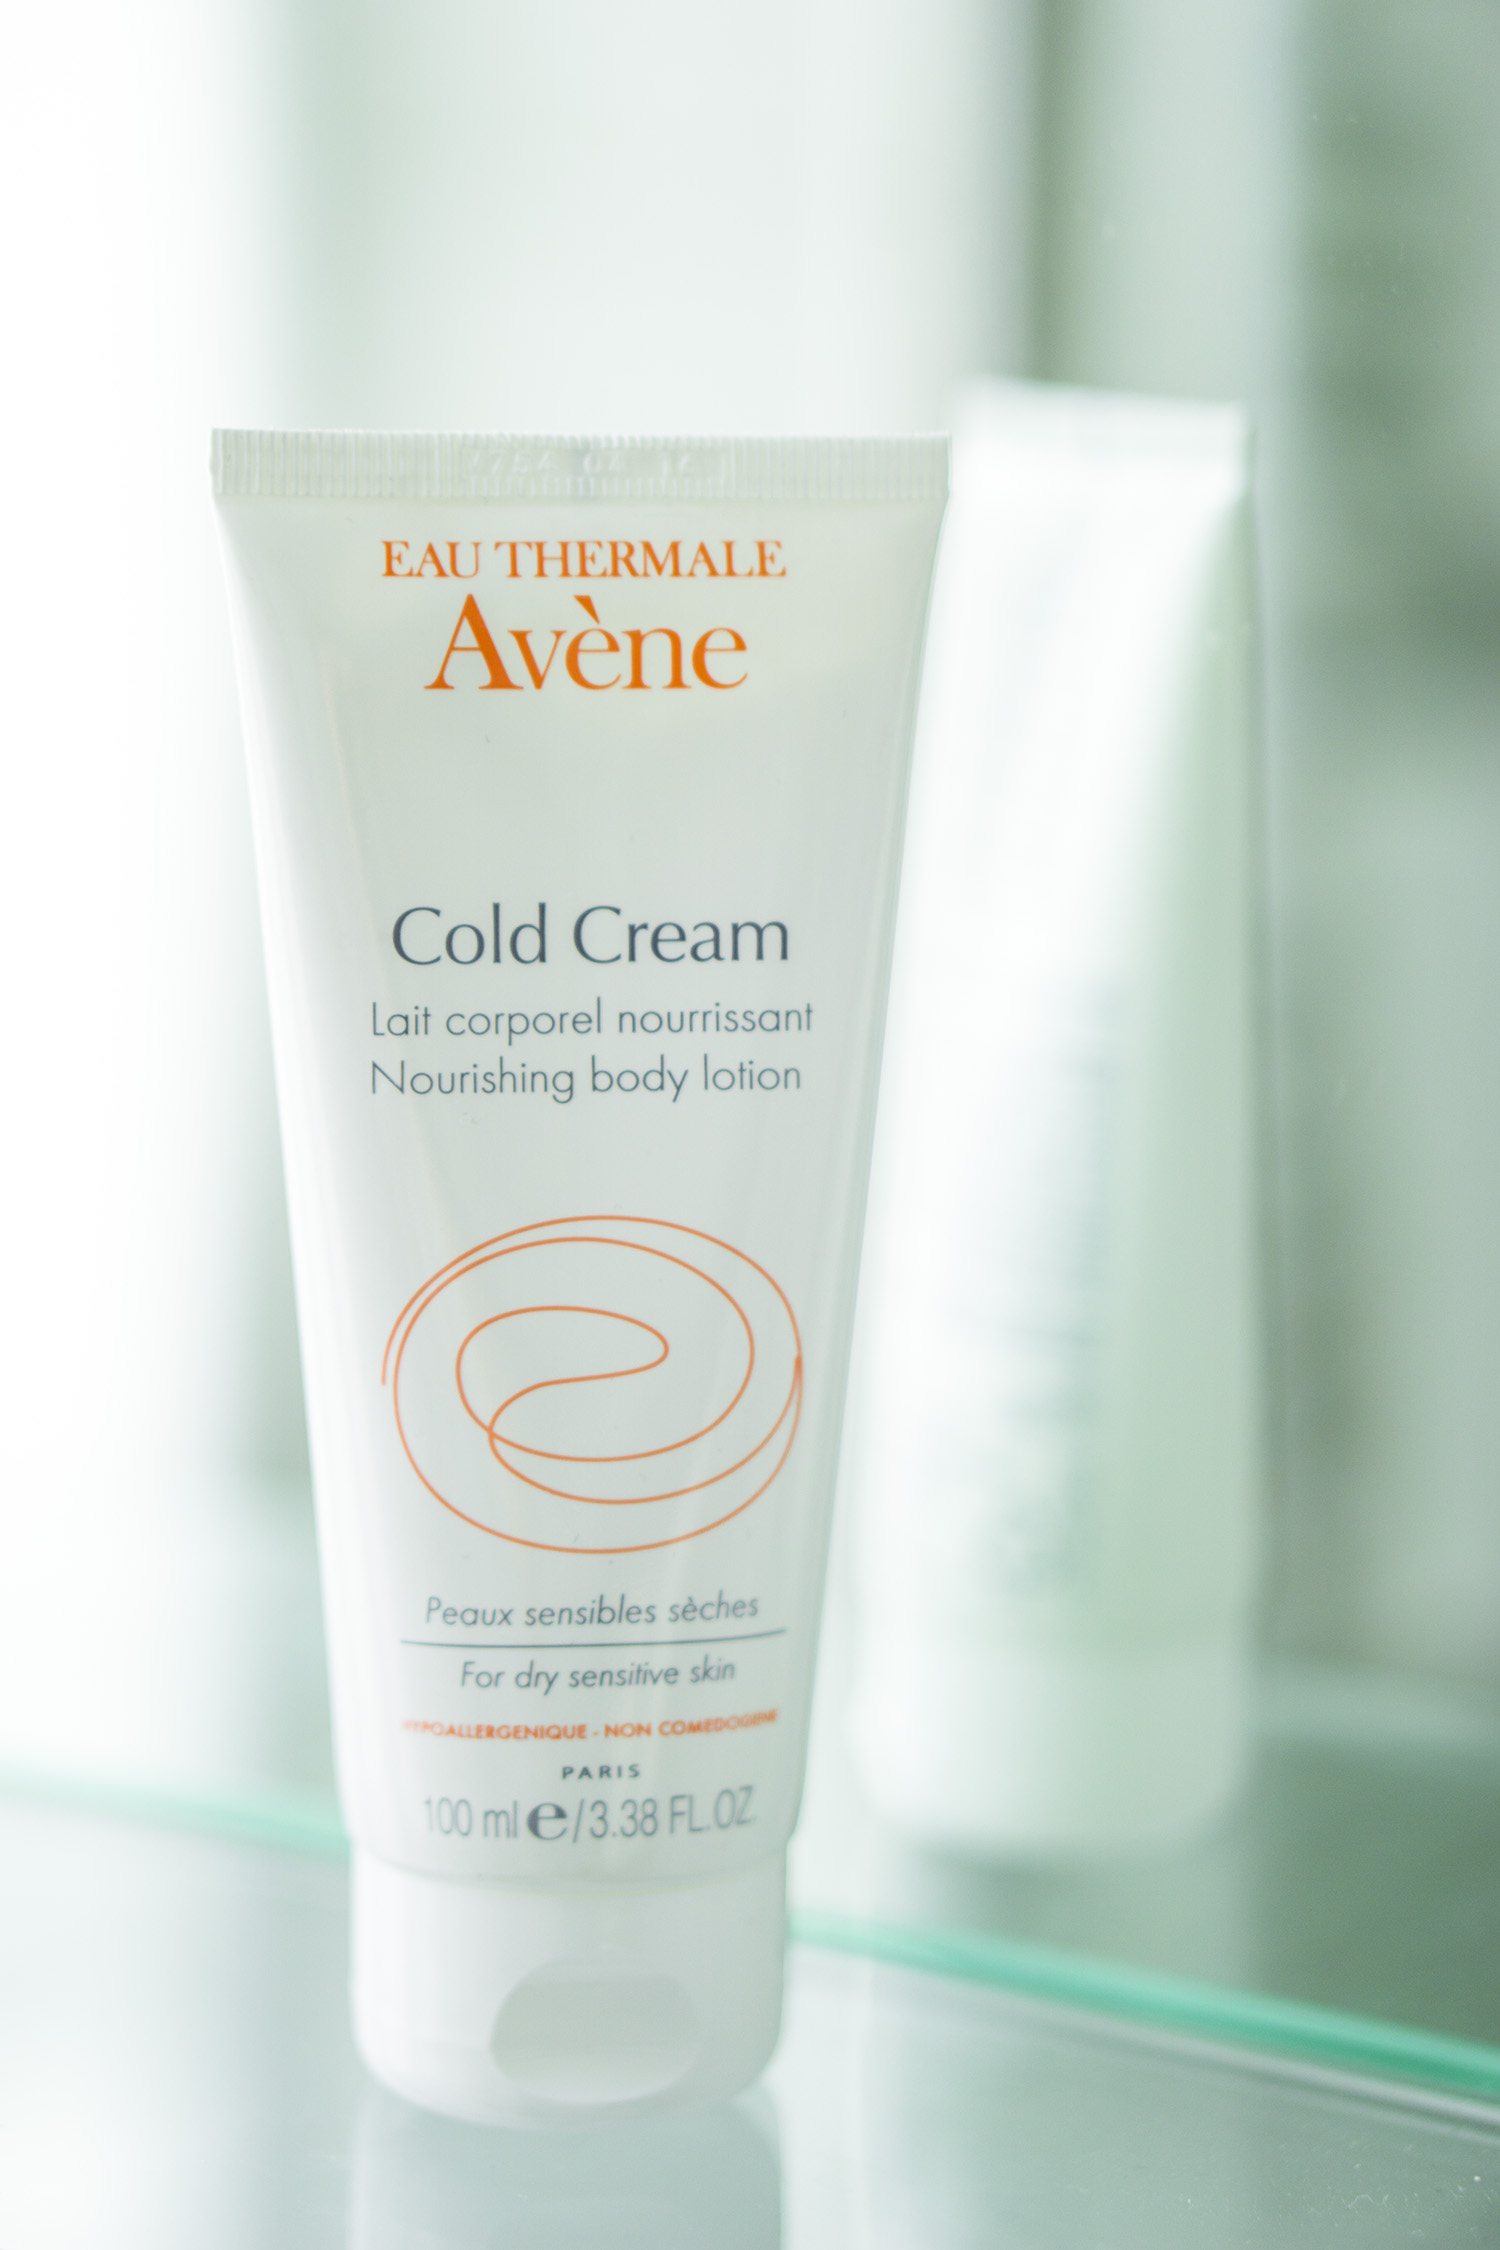 Avene Cold Cream - Best Products at French Pharmacy 2017